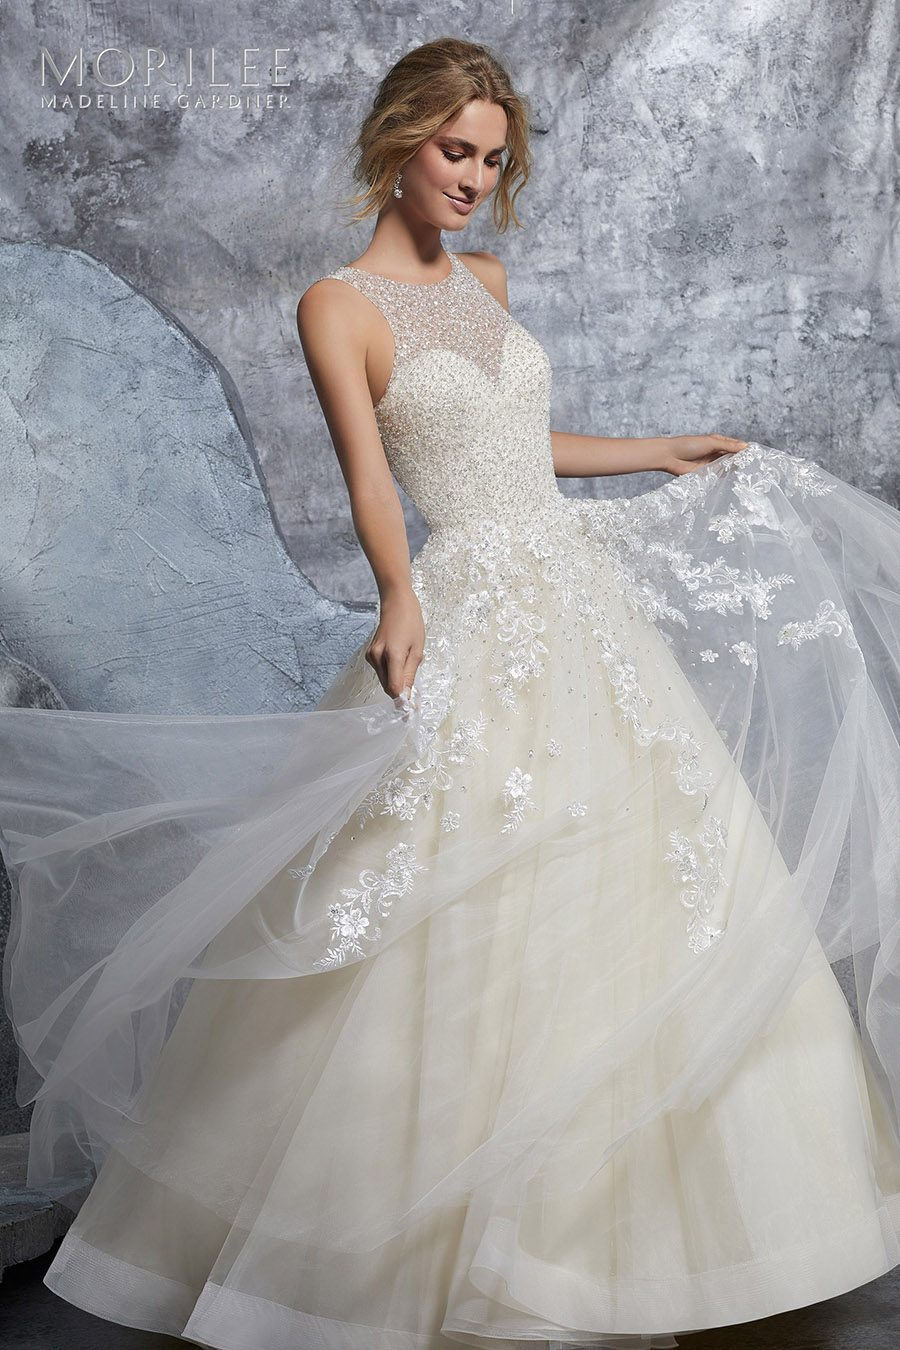 What's underneath your dress to make you look amazing? With TDR Bridal Halesowen and Morilee by Madeline Gardner (3)